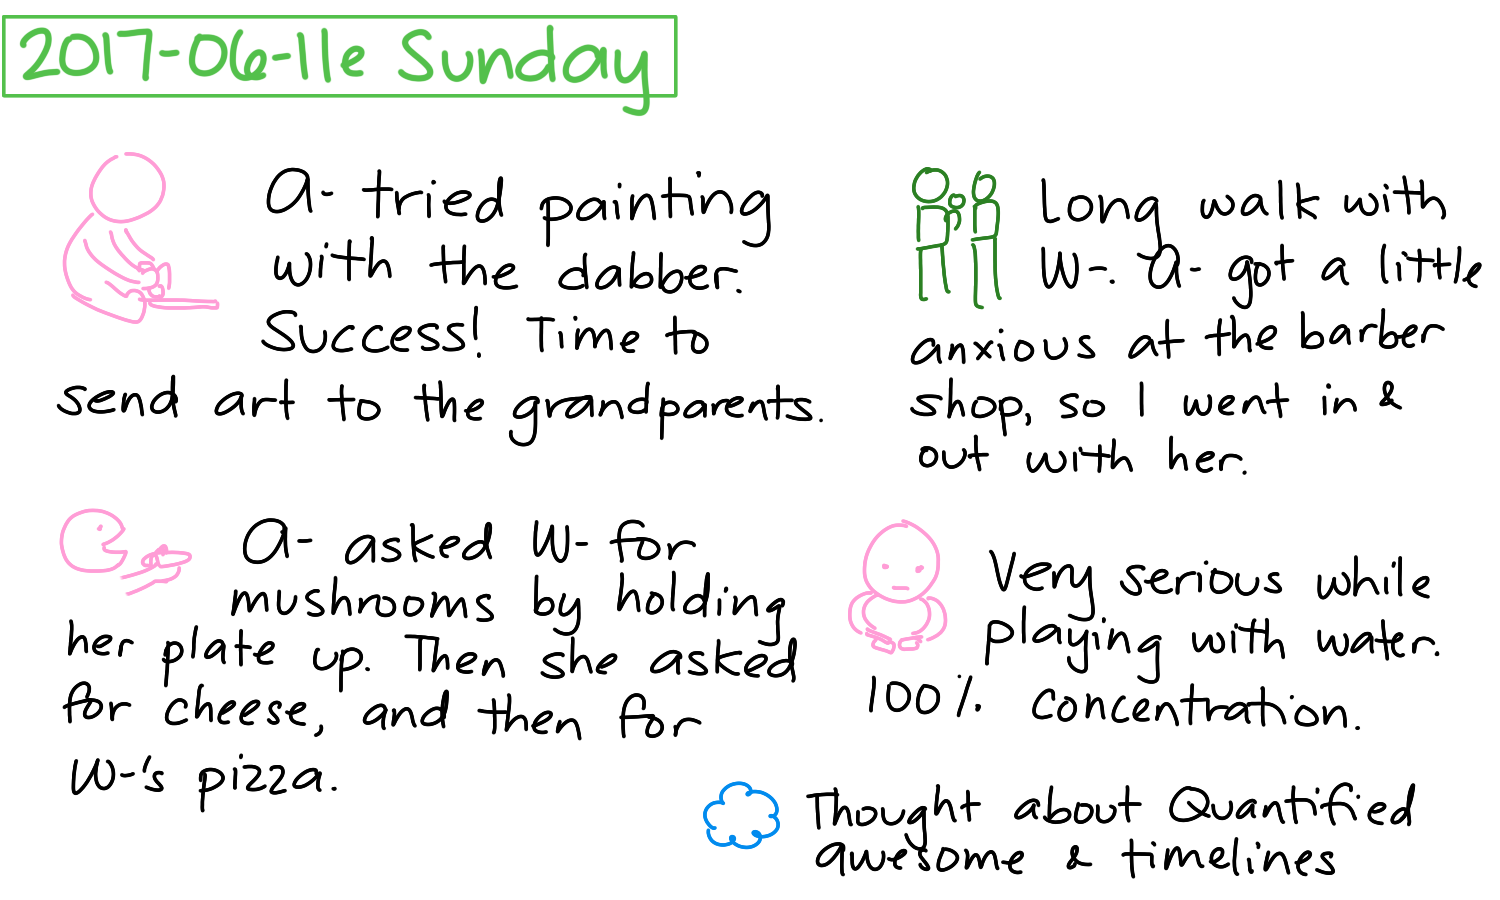 2017-06-11e Sunday #daily #journal.png